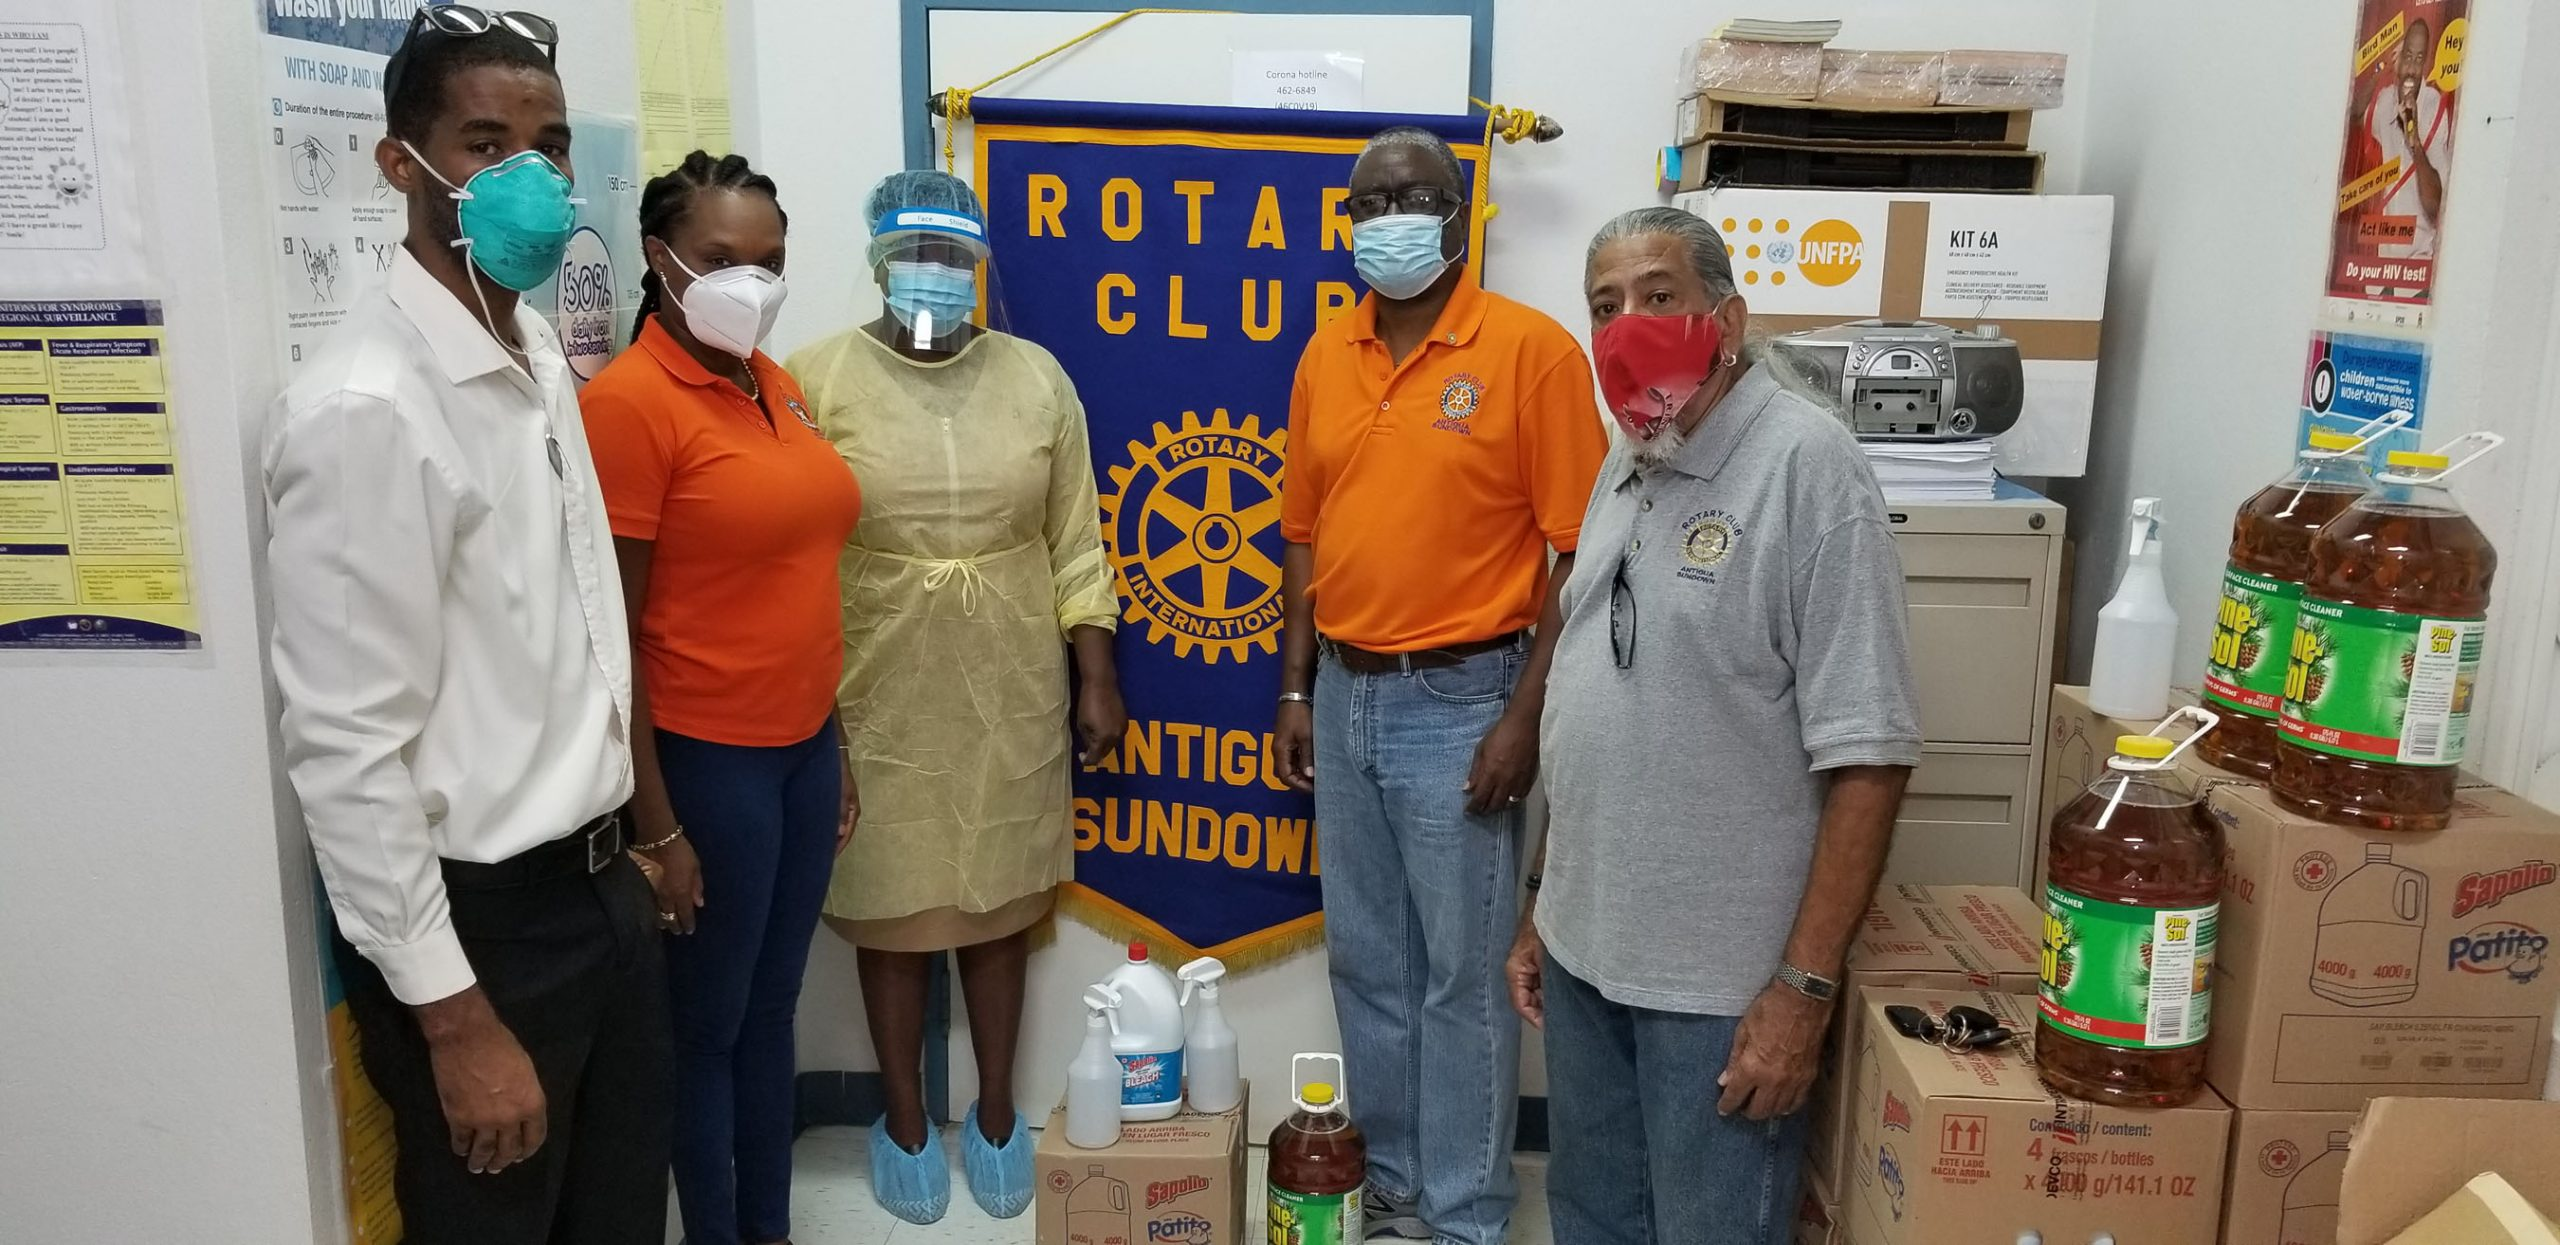 Rotarians donate cleaning supplies to boost Covid-19 fight ...